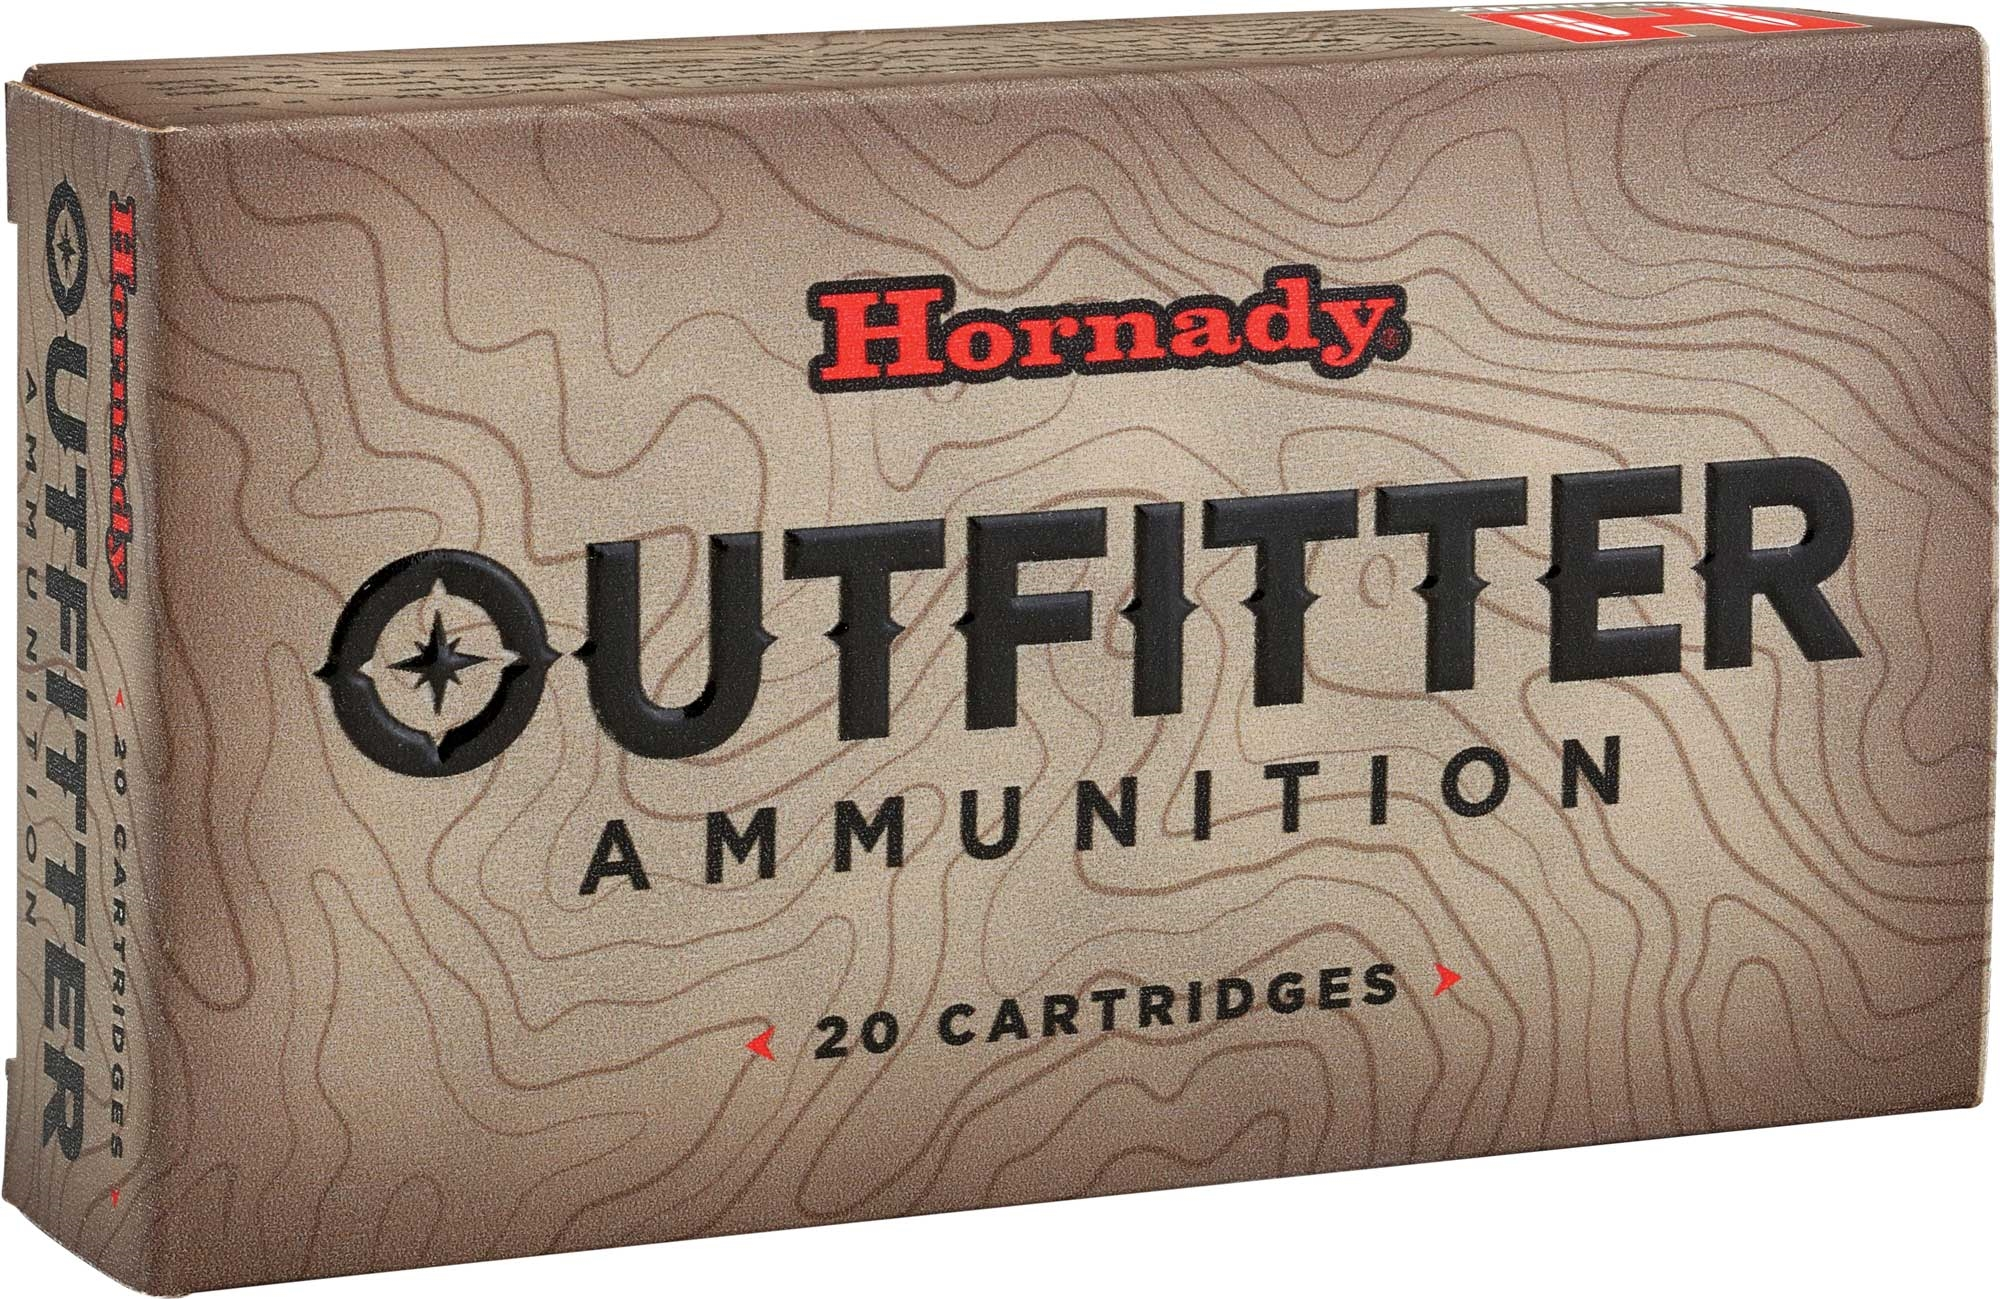 Hornady Outfitter Ammunition 7mm Remington Magnum 150 Grain GMX Lead-Free